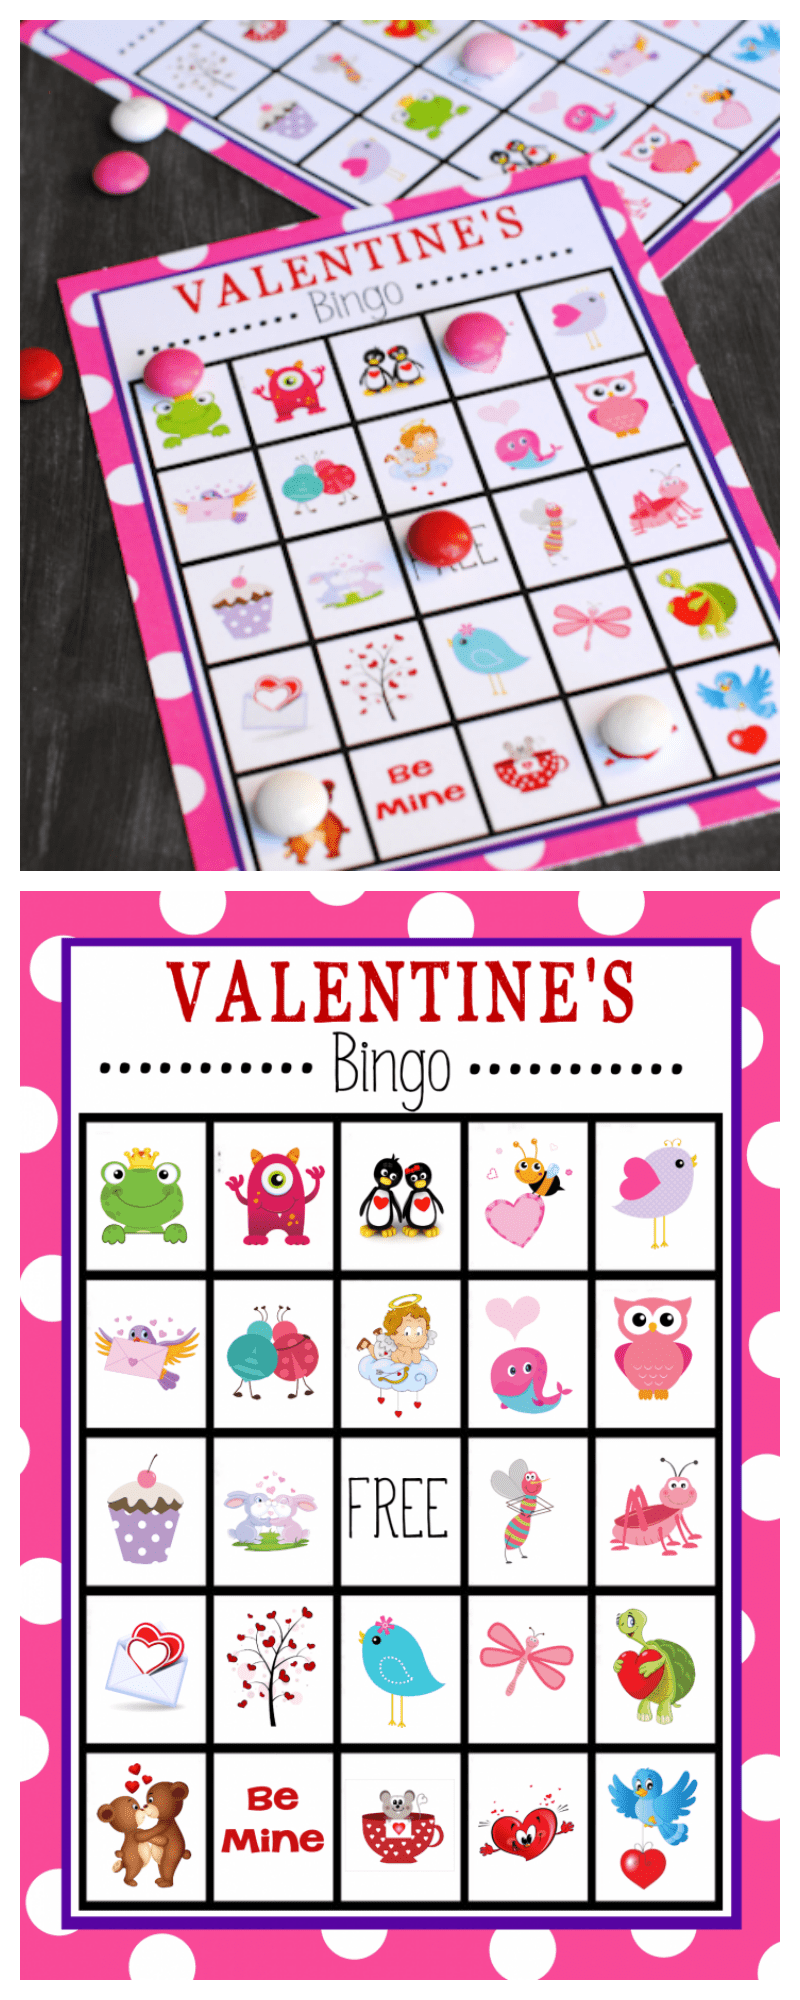 Valentine's Bingo Game to Print and Play! This Valentine Bingo is the perfect game to play for school parties or to have fun with the kids. #valentinesday #valentinesdayparty